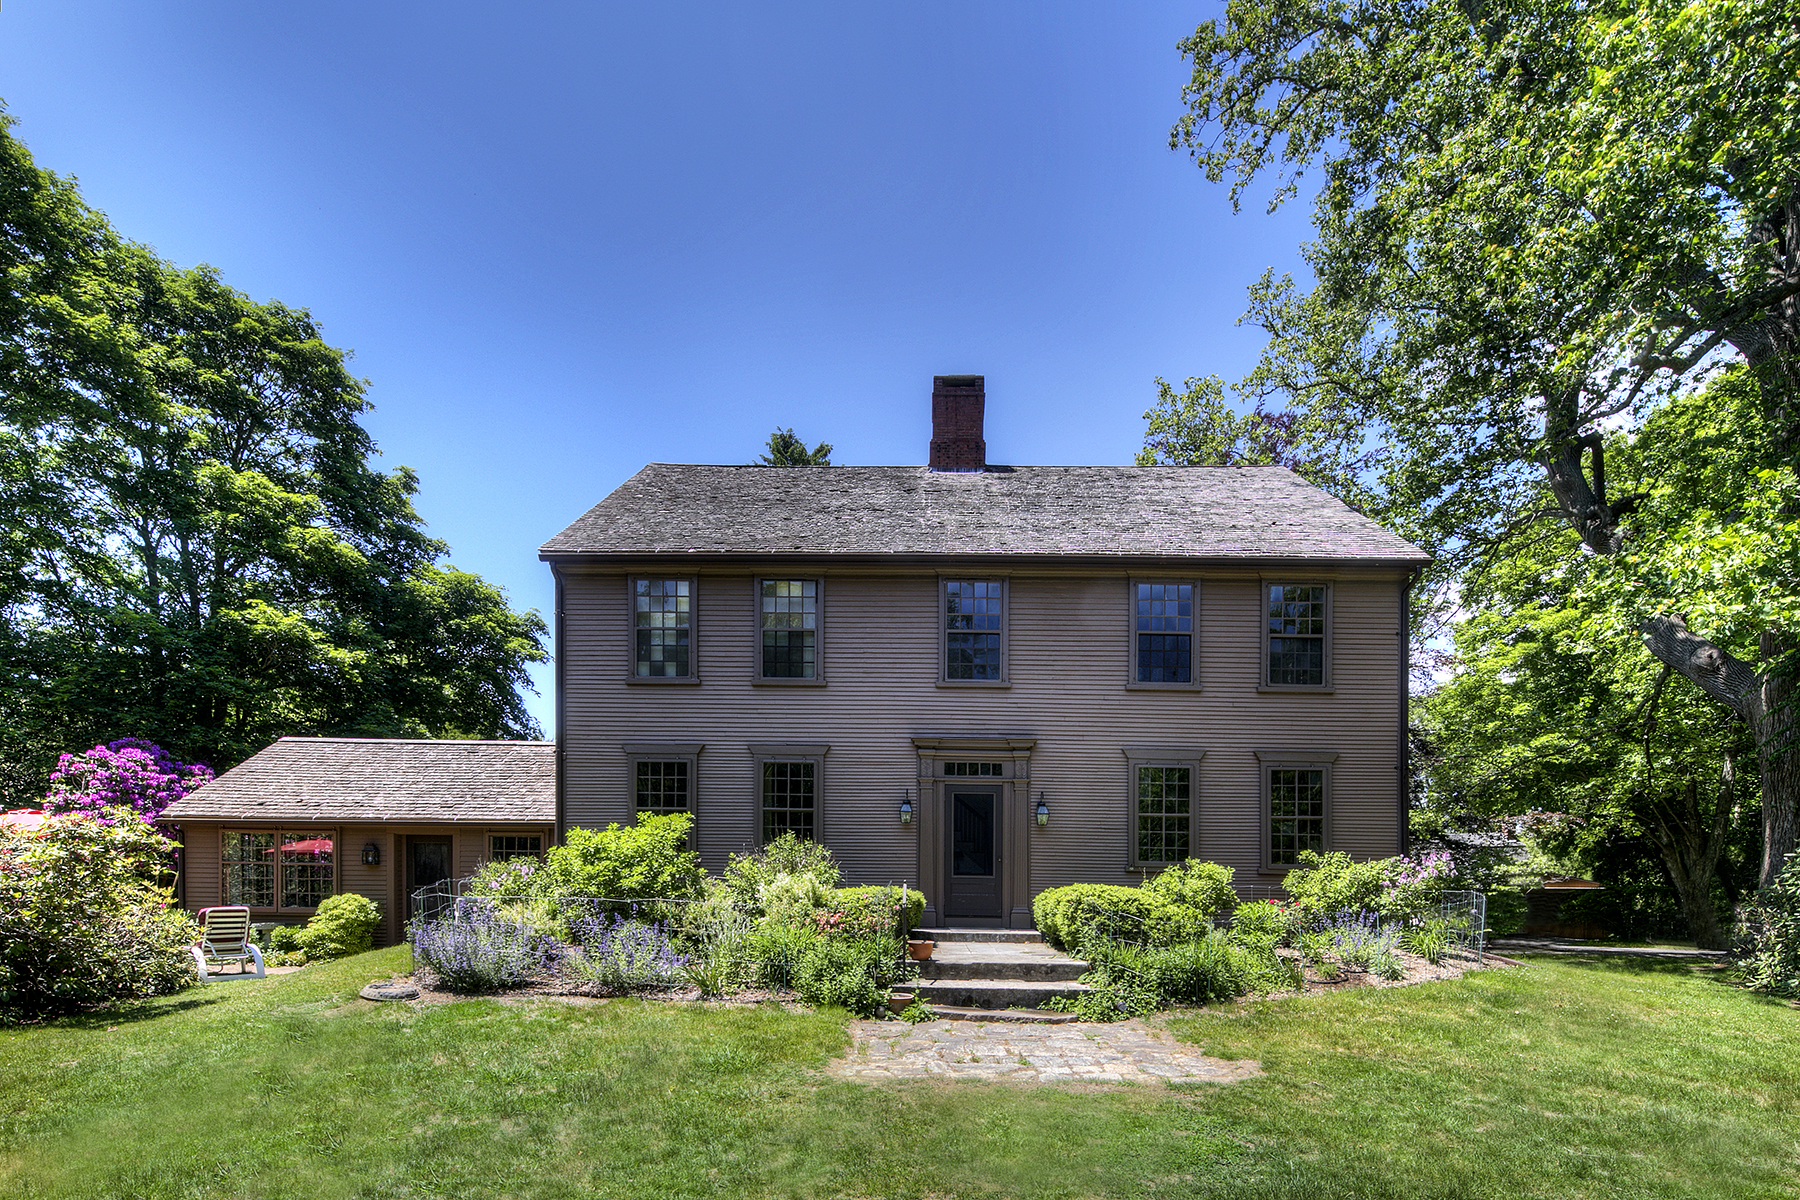 Maison unifamiliale pour l Vente à The Potter Homestead 40 Potter Lane South Kingstown, Rhode Island, 02881 États-Unis